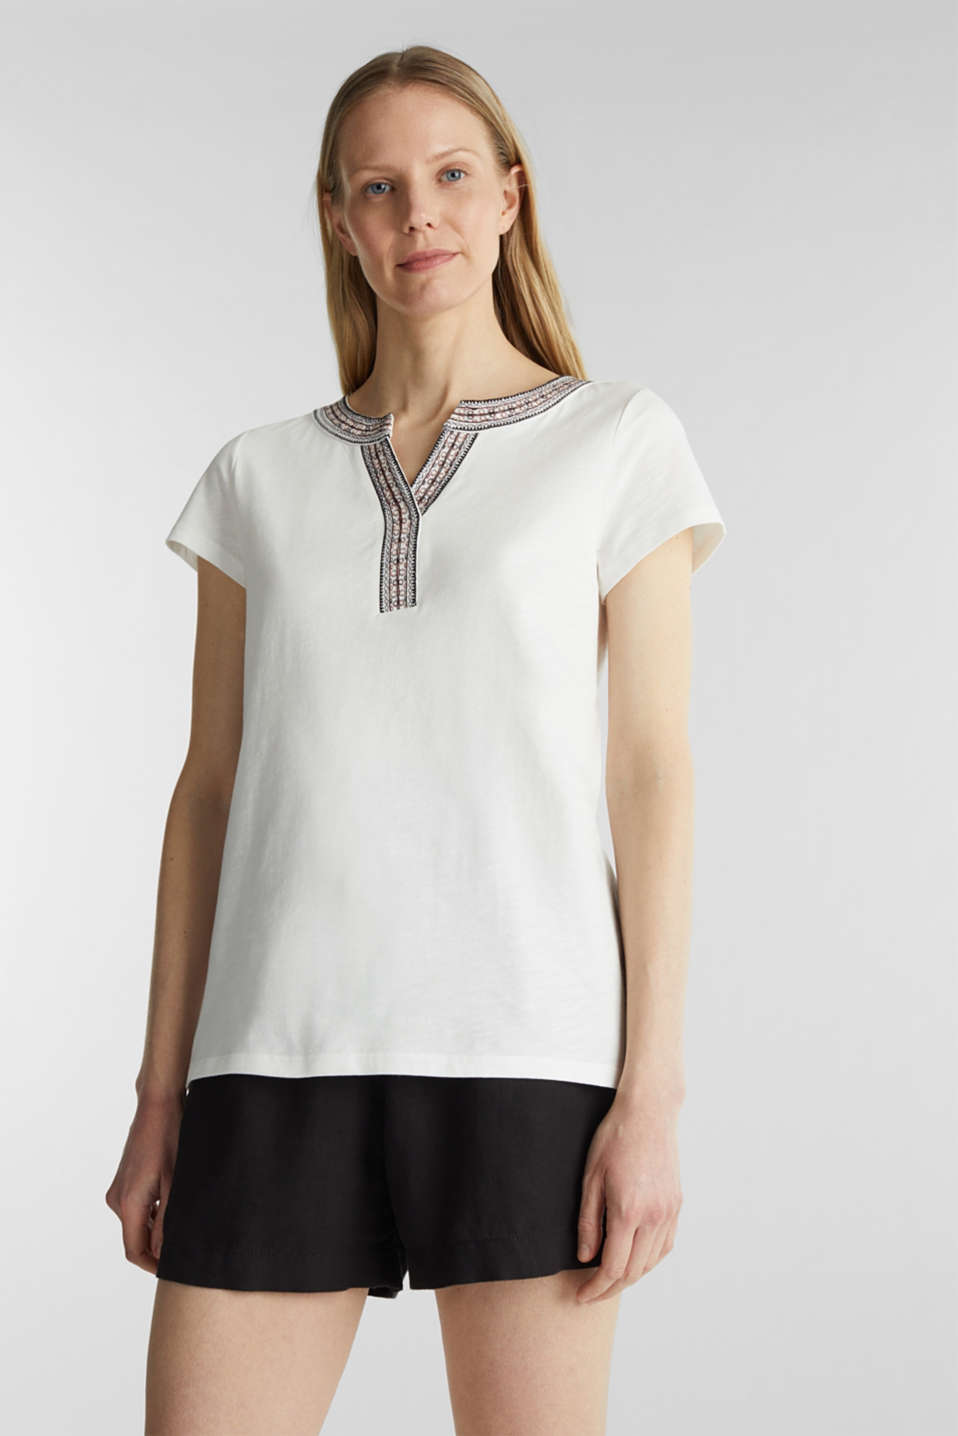 Esprit - Embroidered T-shirt, 100% cotton